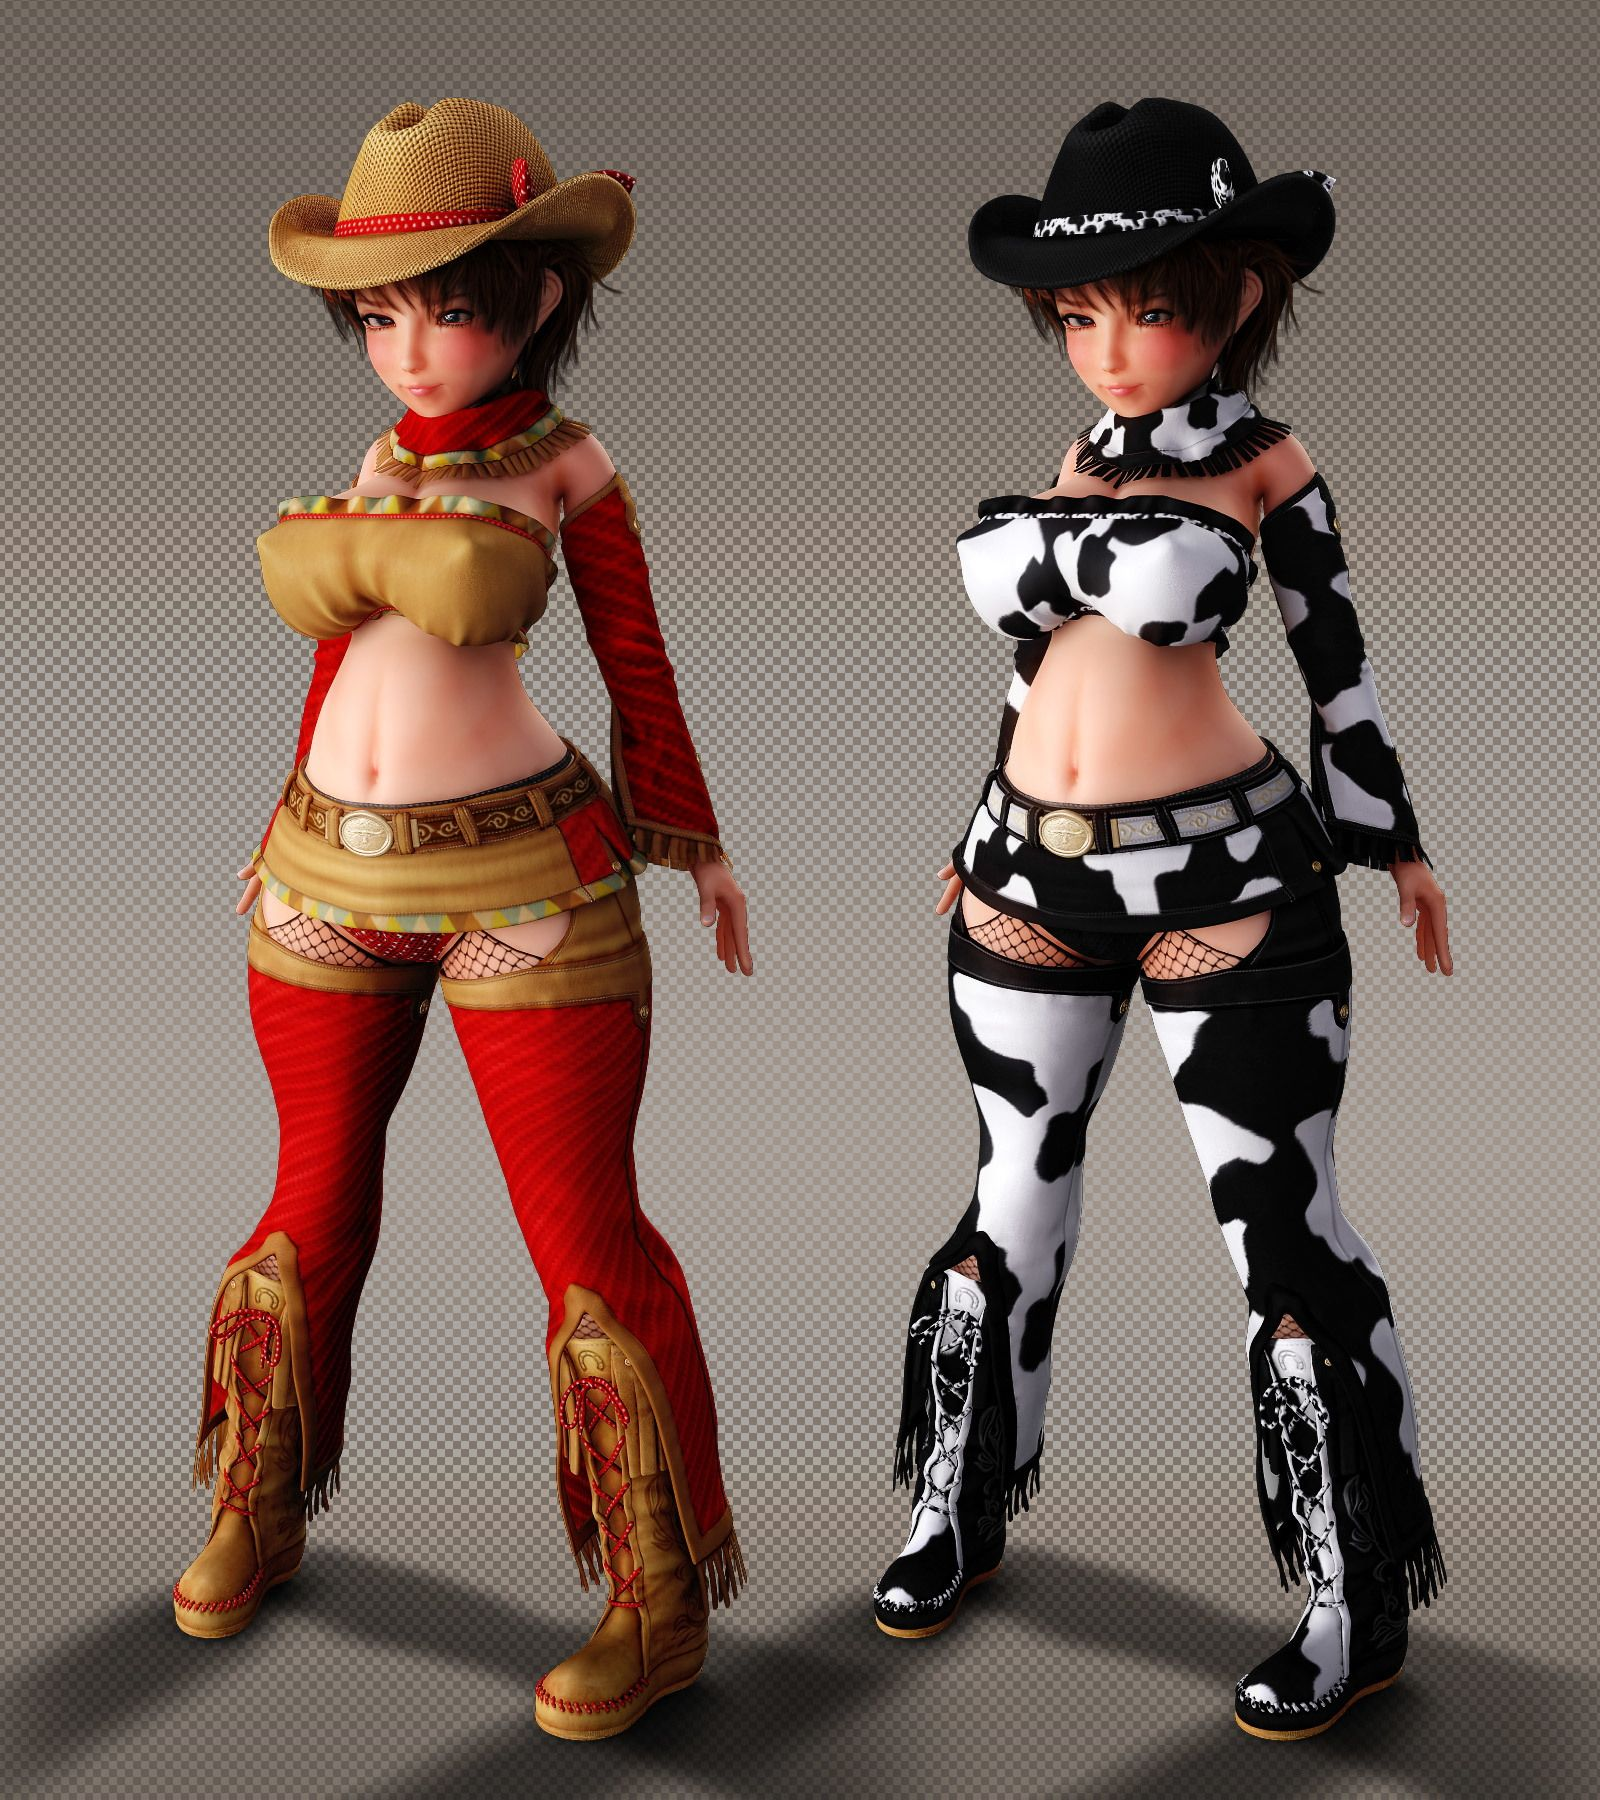 【Chocoンとこ 同人】CowgirlOutfitforHaru